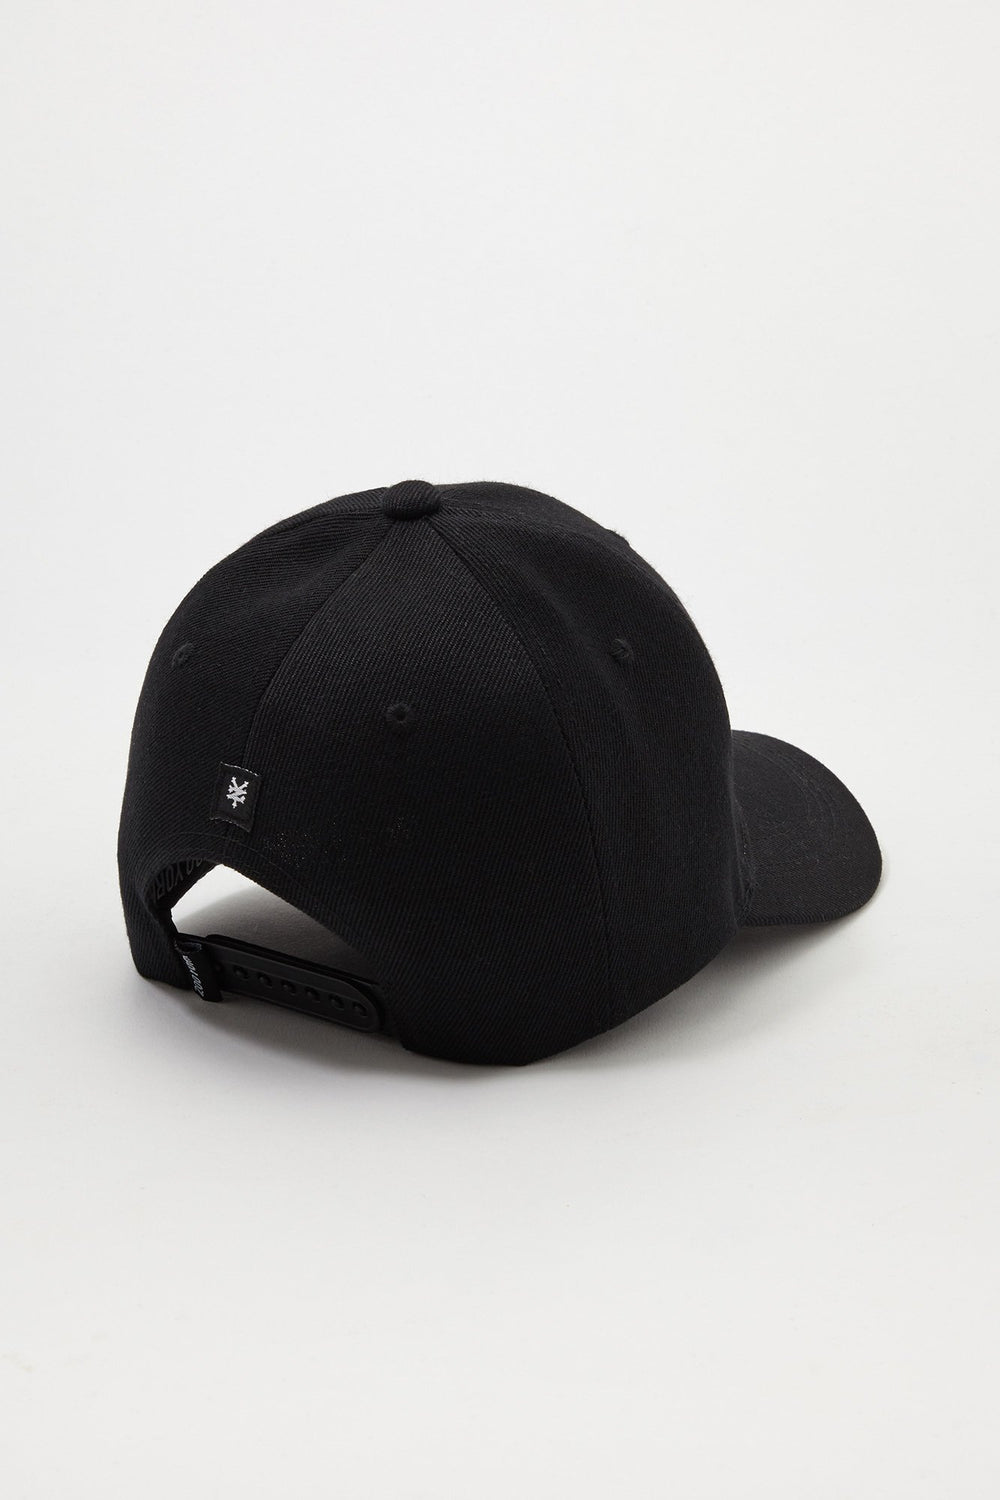 Zoo York Womens Cherry Hat Black